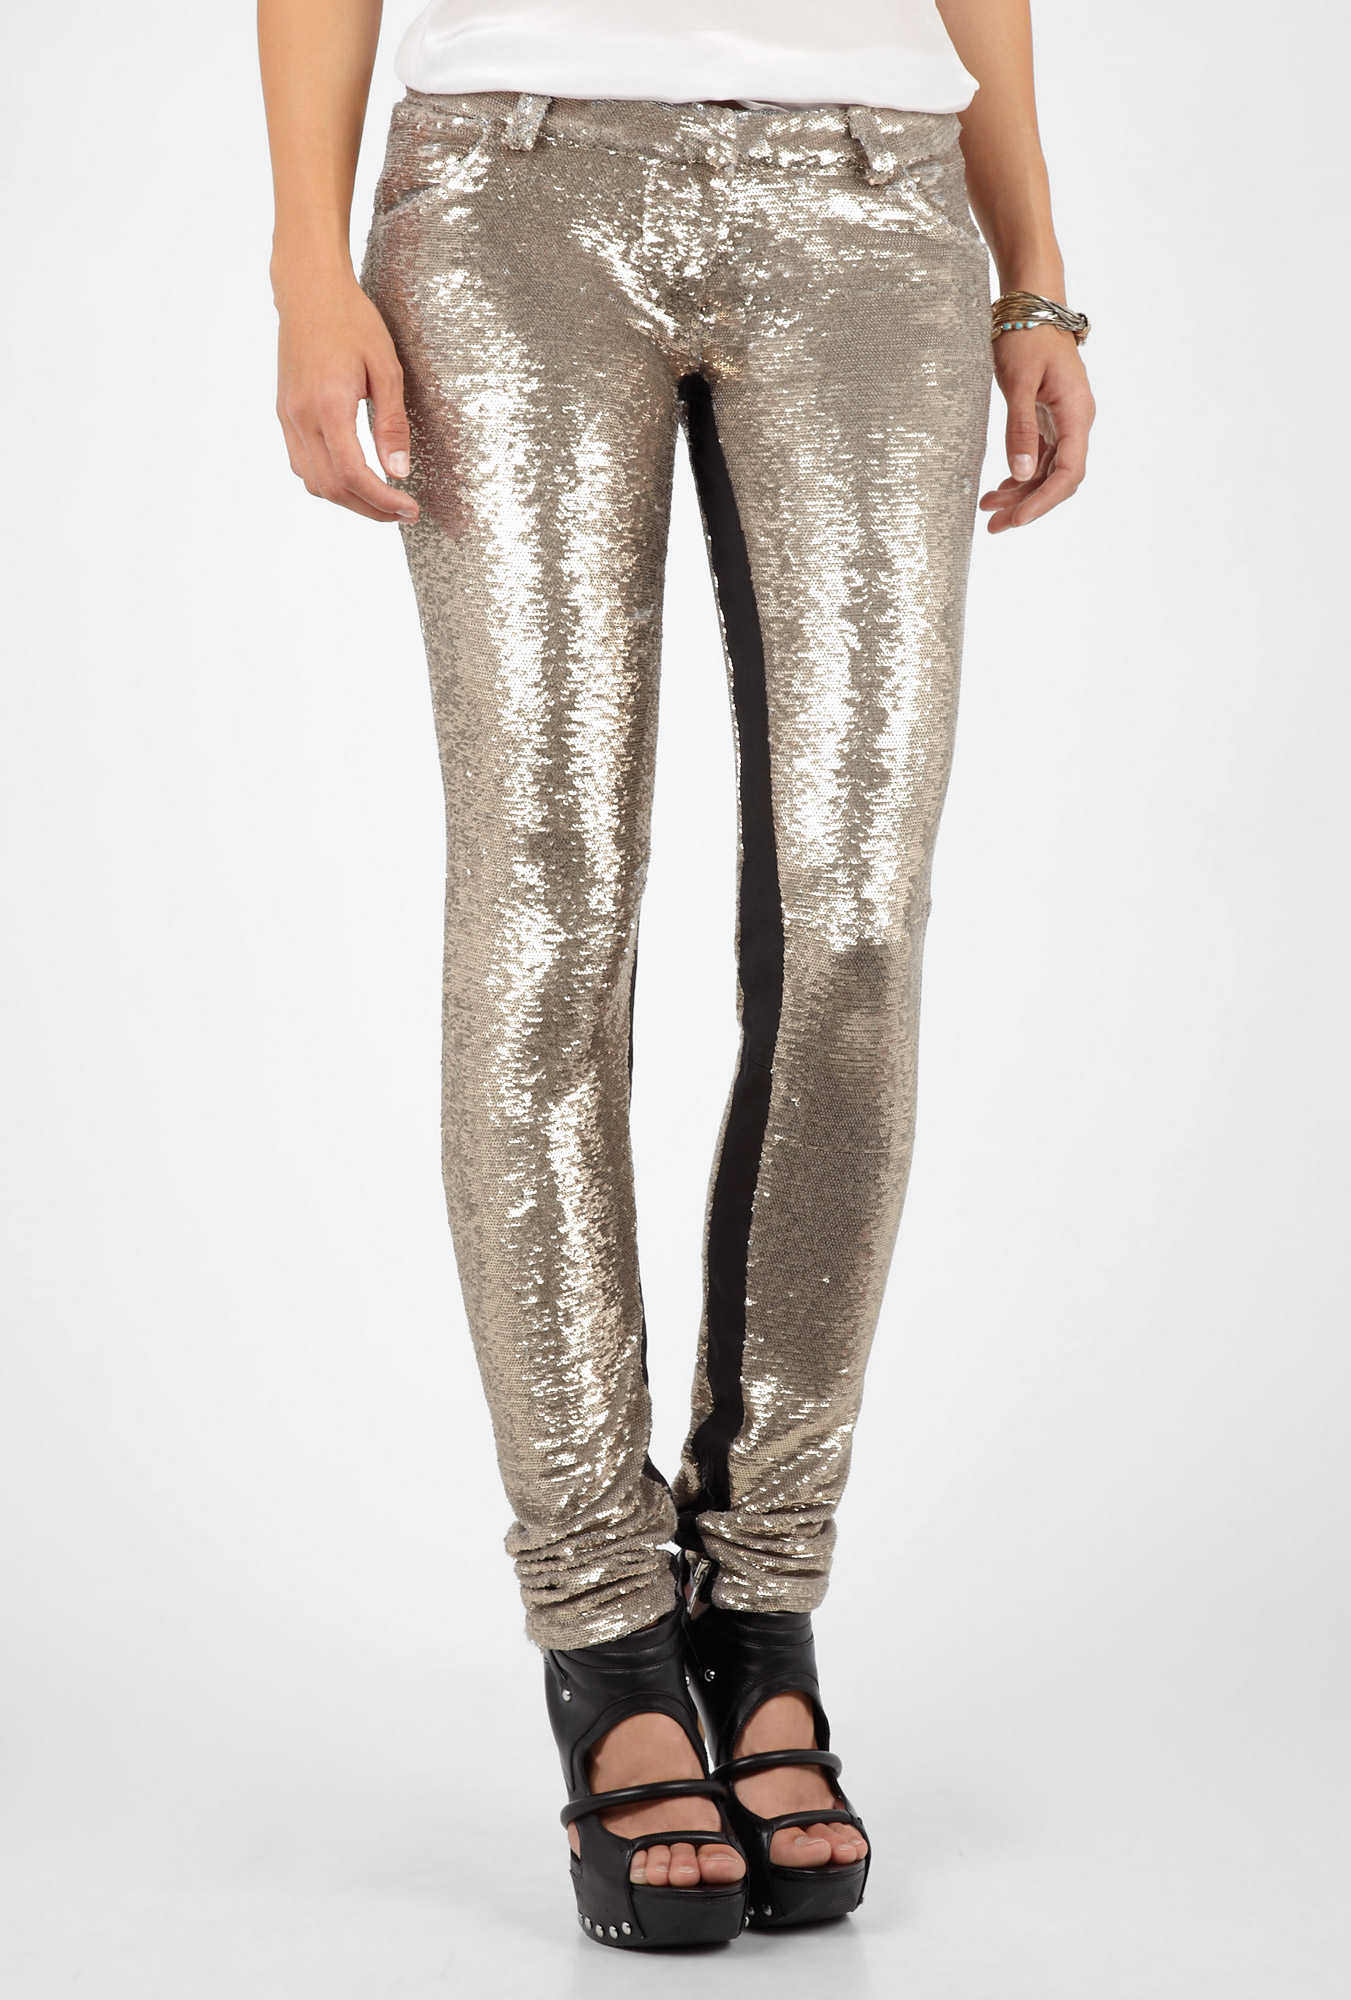 Aurelie silver sequinned trousers by iro